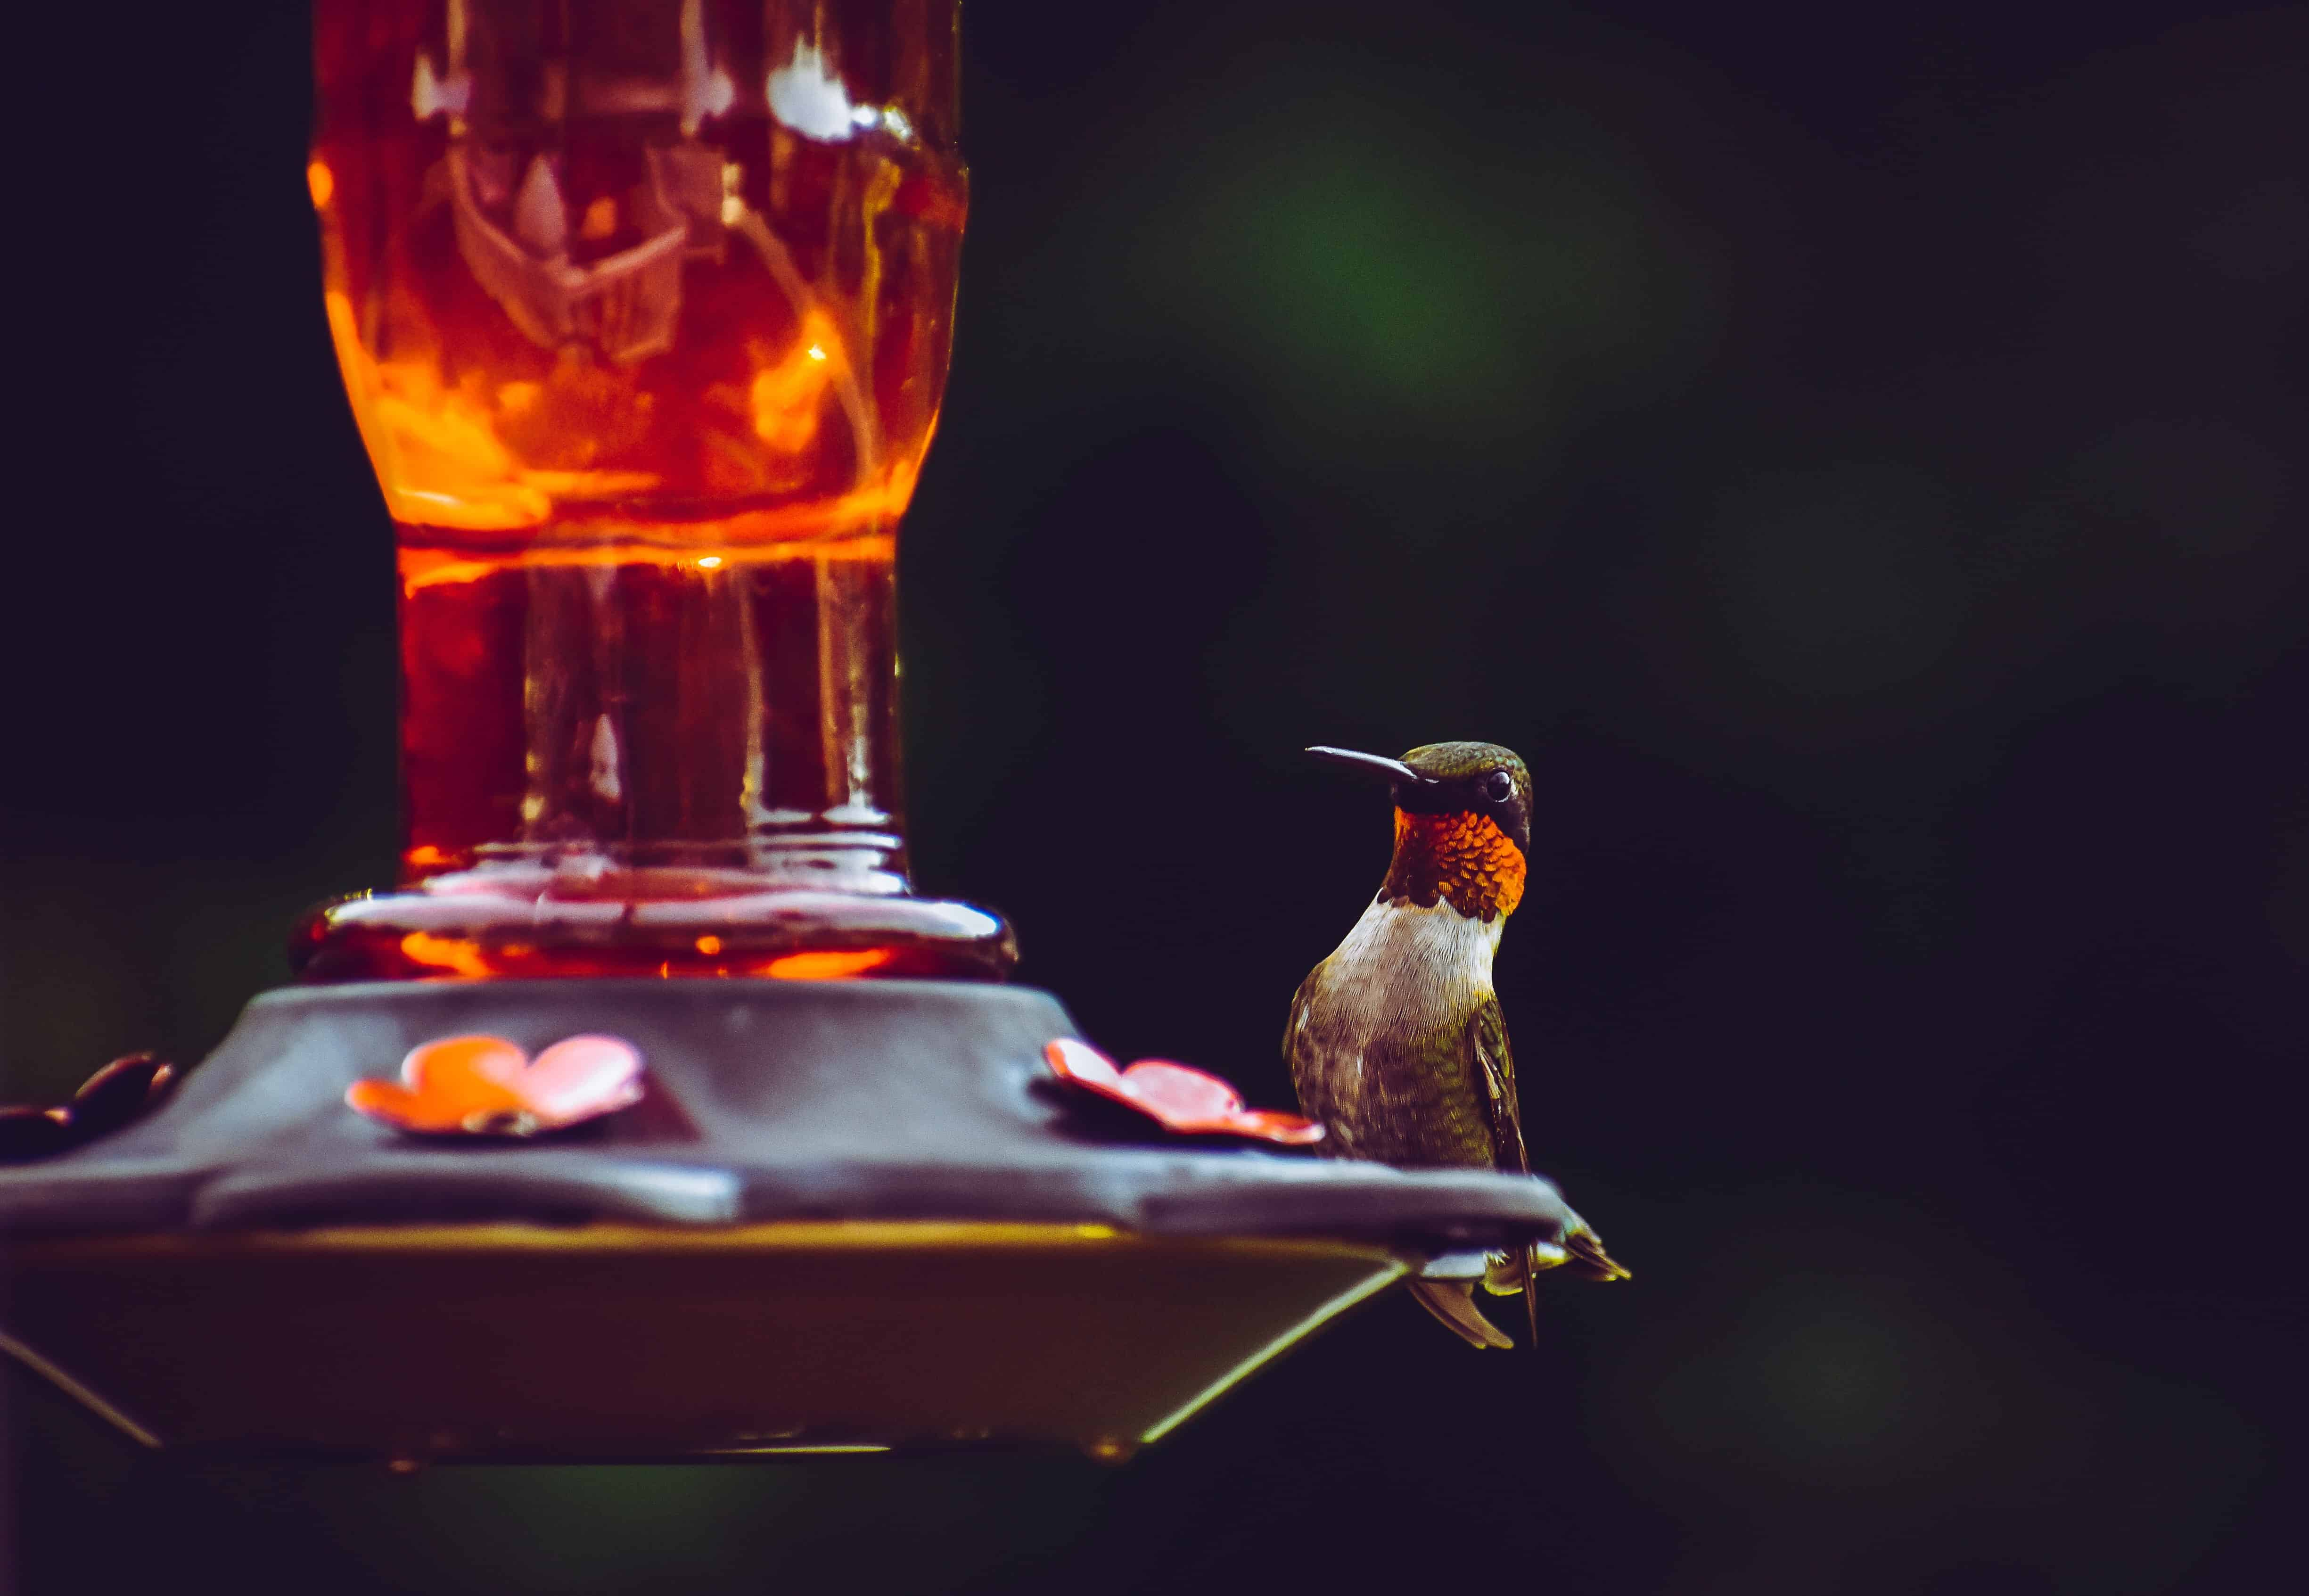 Humming Bird perched on a bird feeder